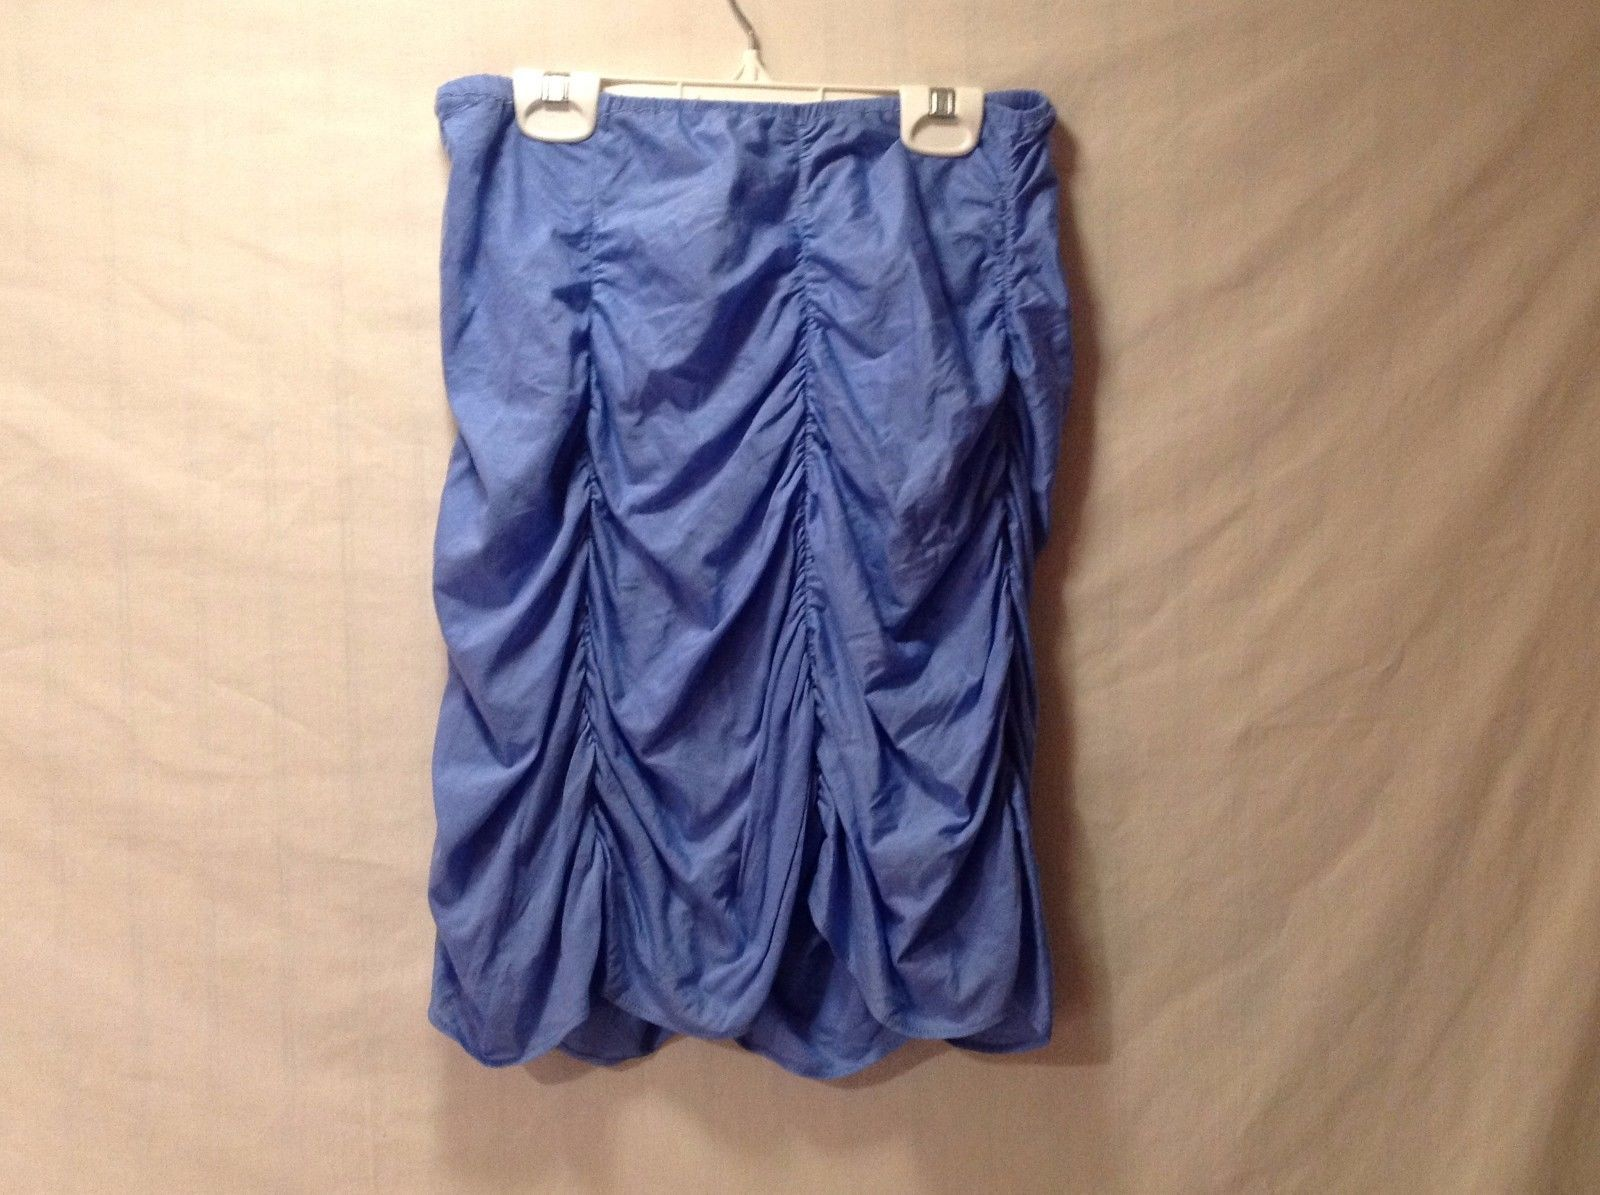 Periwinkle Annie Walwyn-Jones Mini Skirt Excellent Condition Size Small